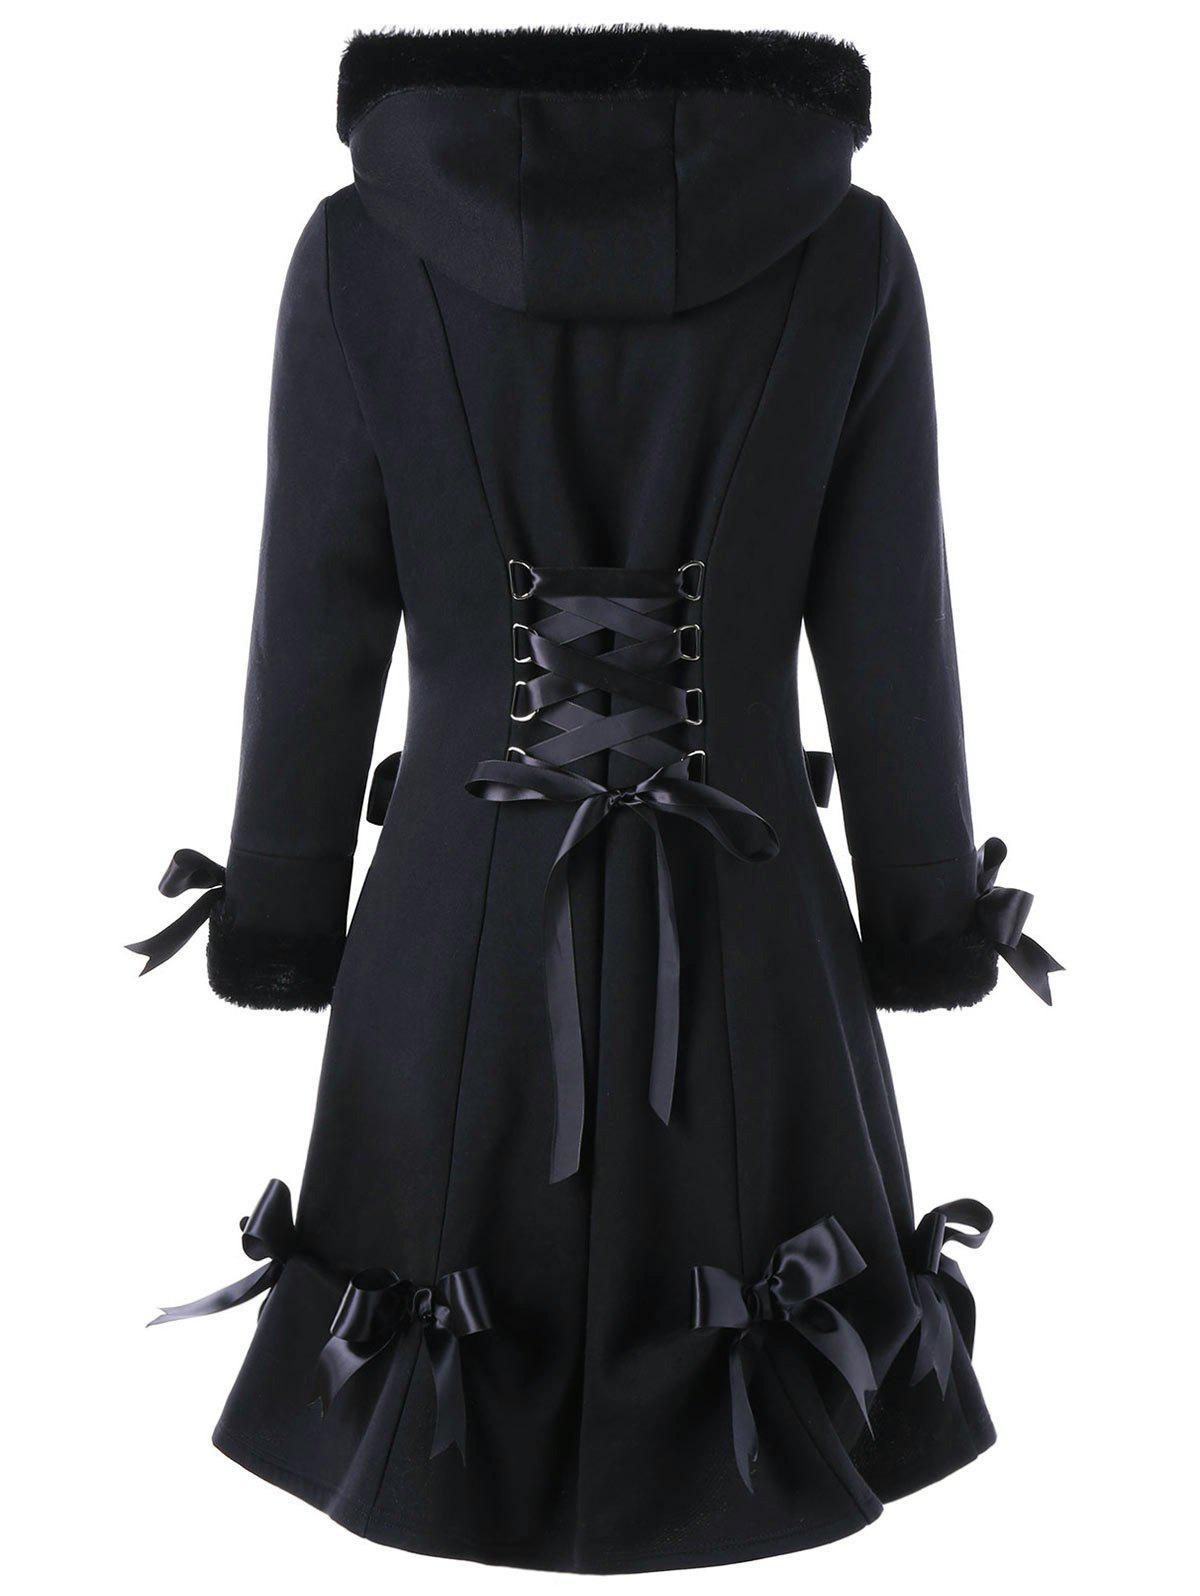 Hooded Bowknot Heart Pocket Long Lace-up CoatWOMEN<br><br>Size: XL; Color: BLACK; Clothes Type: Others; Material: Cotton Blend,Polyester; Type: Slim; Shirt Length: Long; Sleeve Length: Full; Collar: Hooded; Pattern Type: Solid; Embellishment: Bowknot; Style: Fashion; Season: Fall,Winter; Weight: 0.7780kg; Package Contents: 1 x Coat;